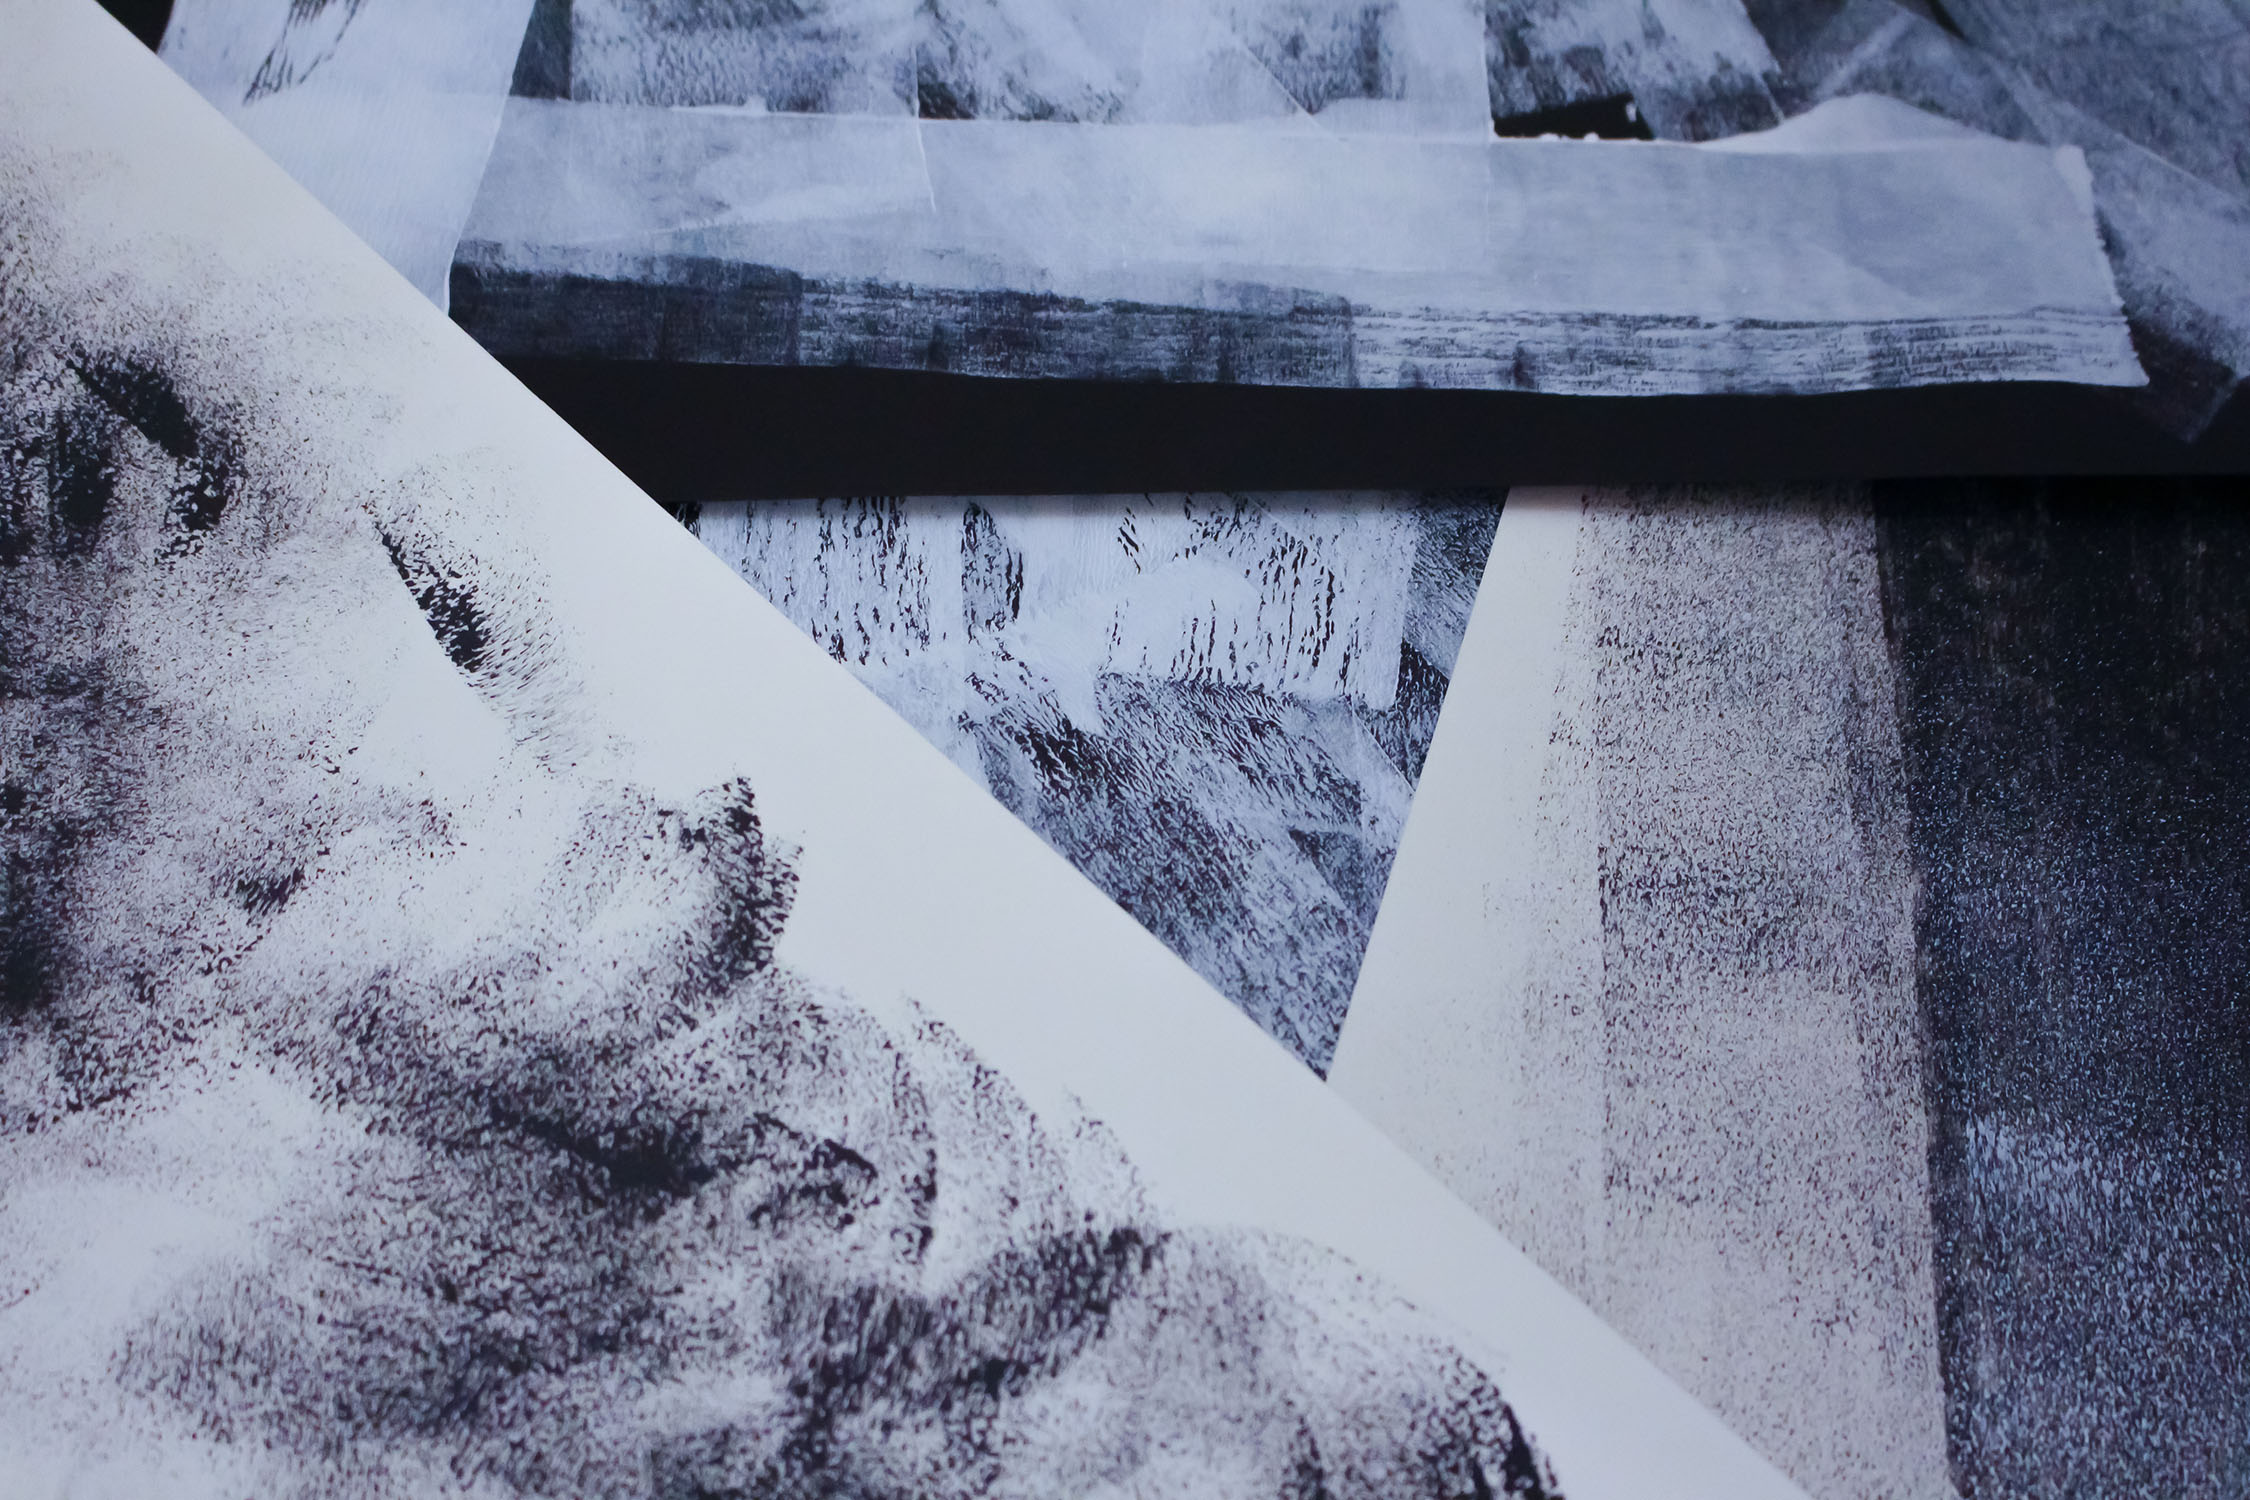 Multiple sheets of paper showing rubbings from different objects to create a texture